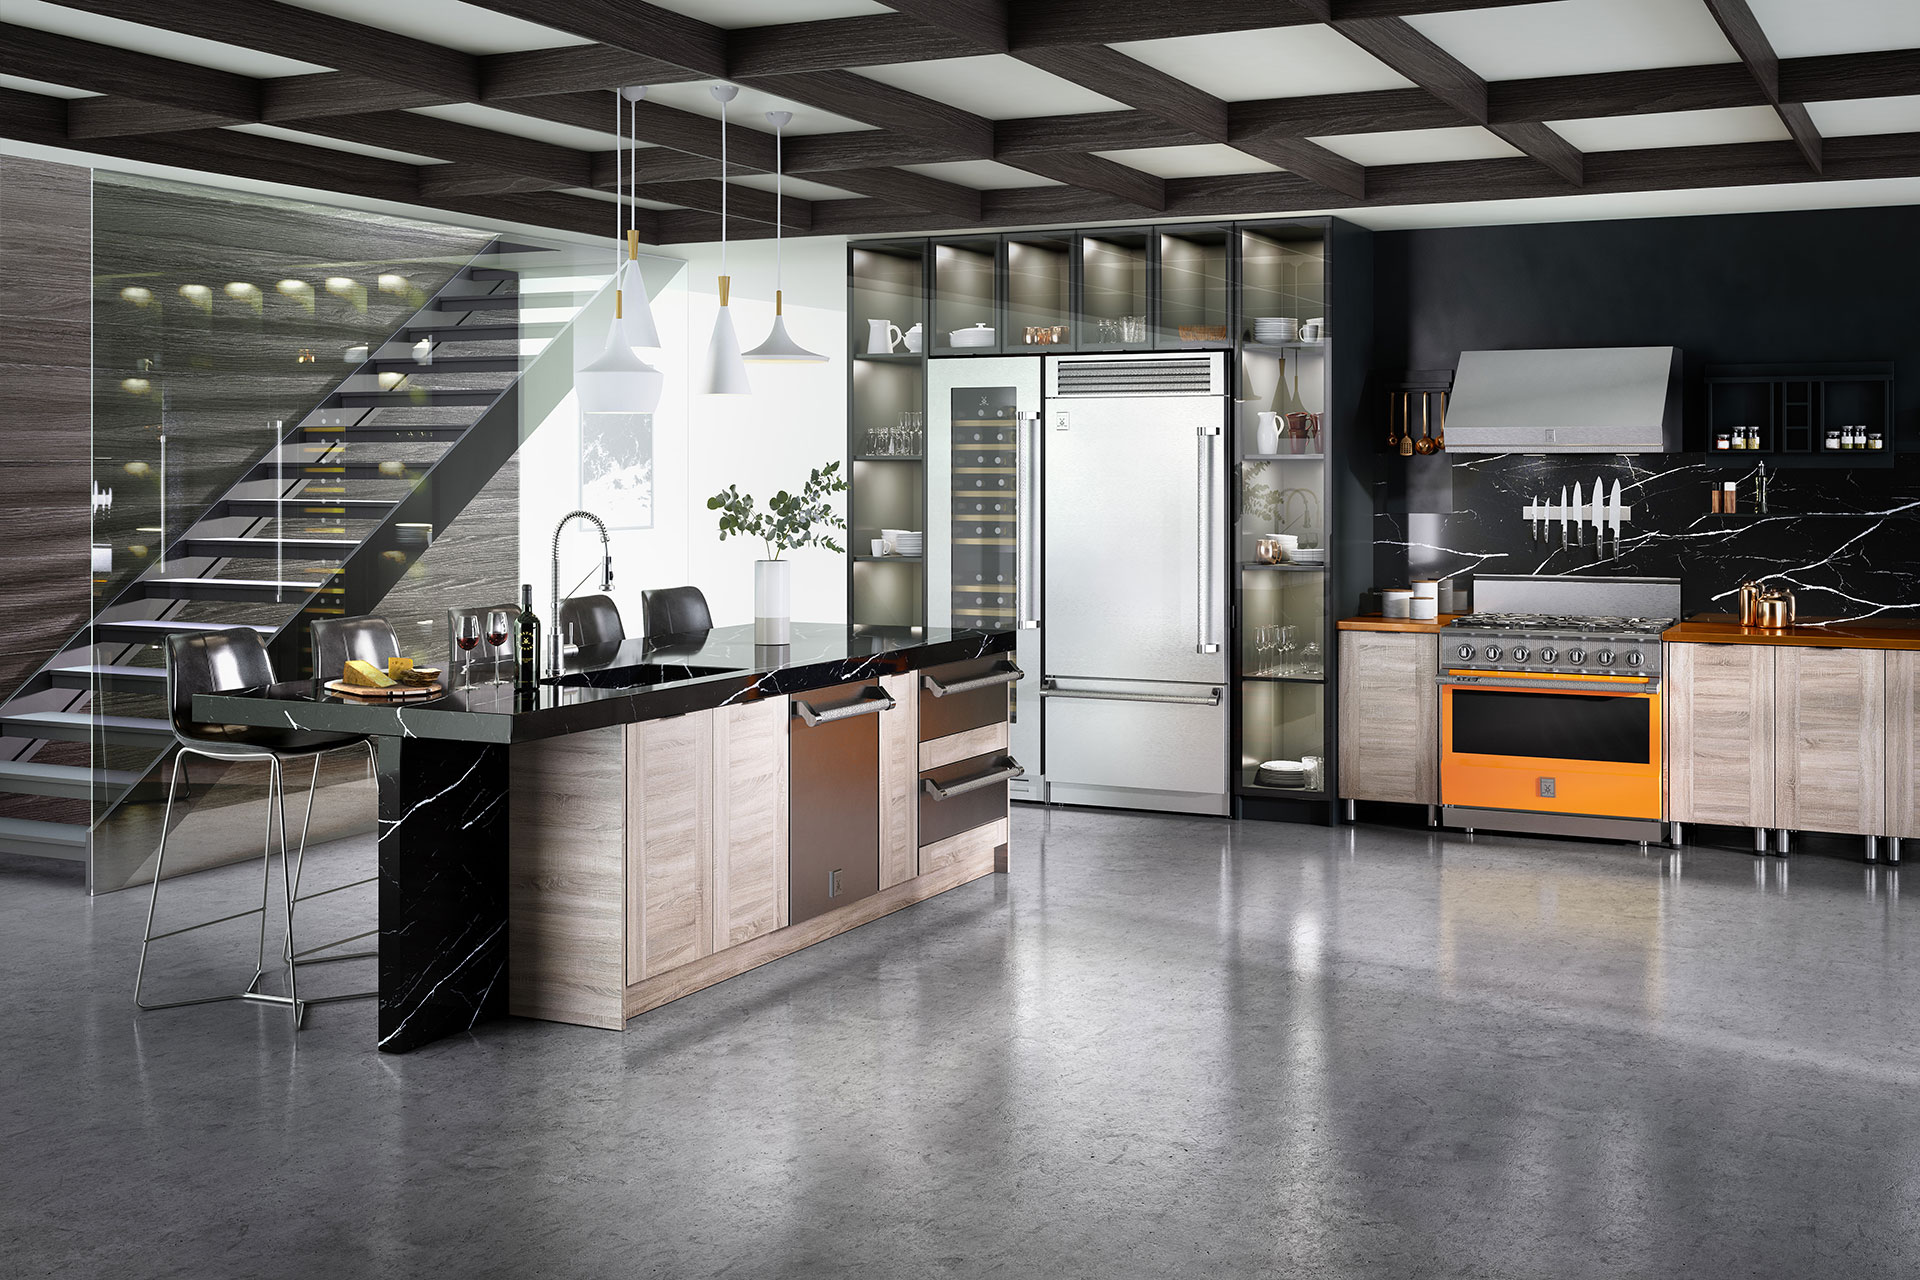 Award-Winning Innovation from Hestan